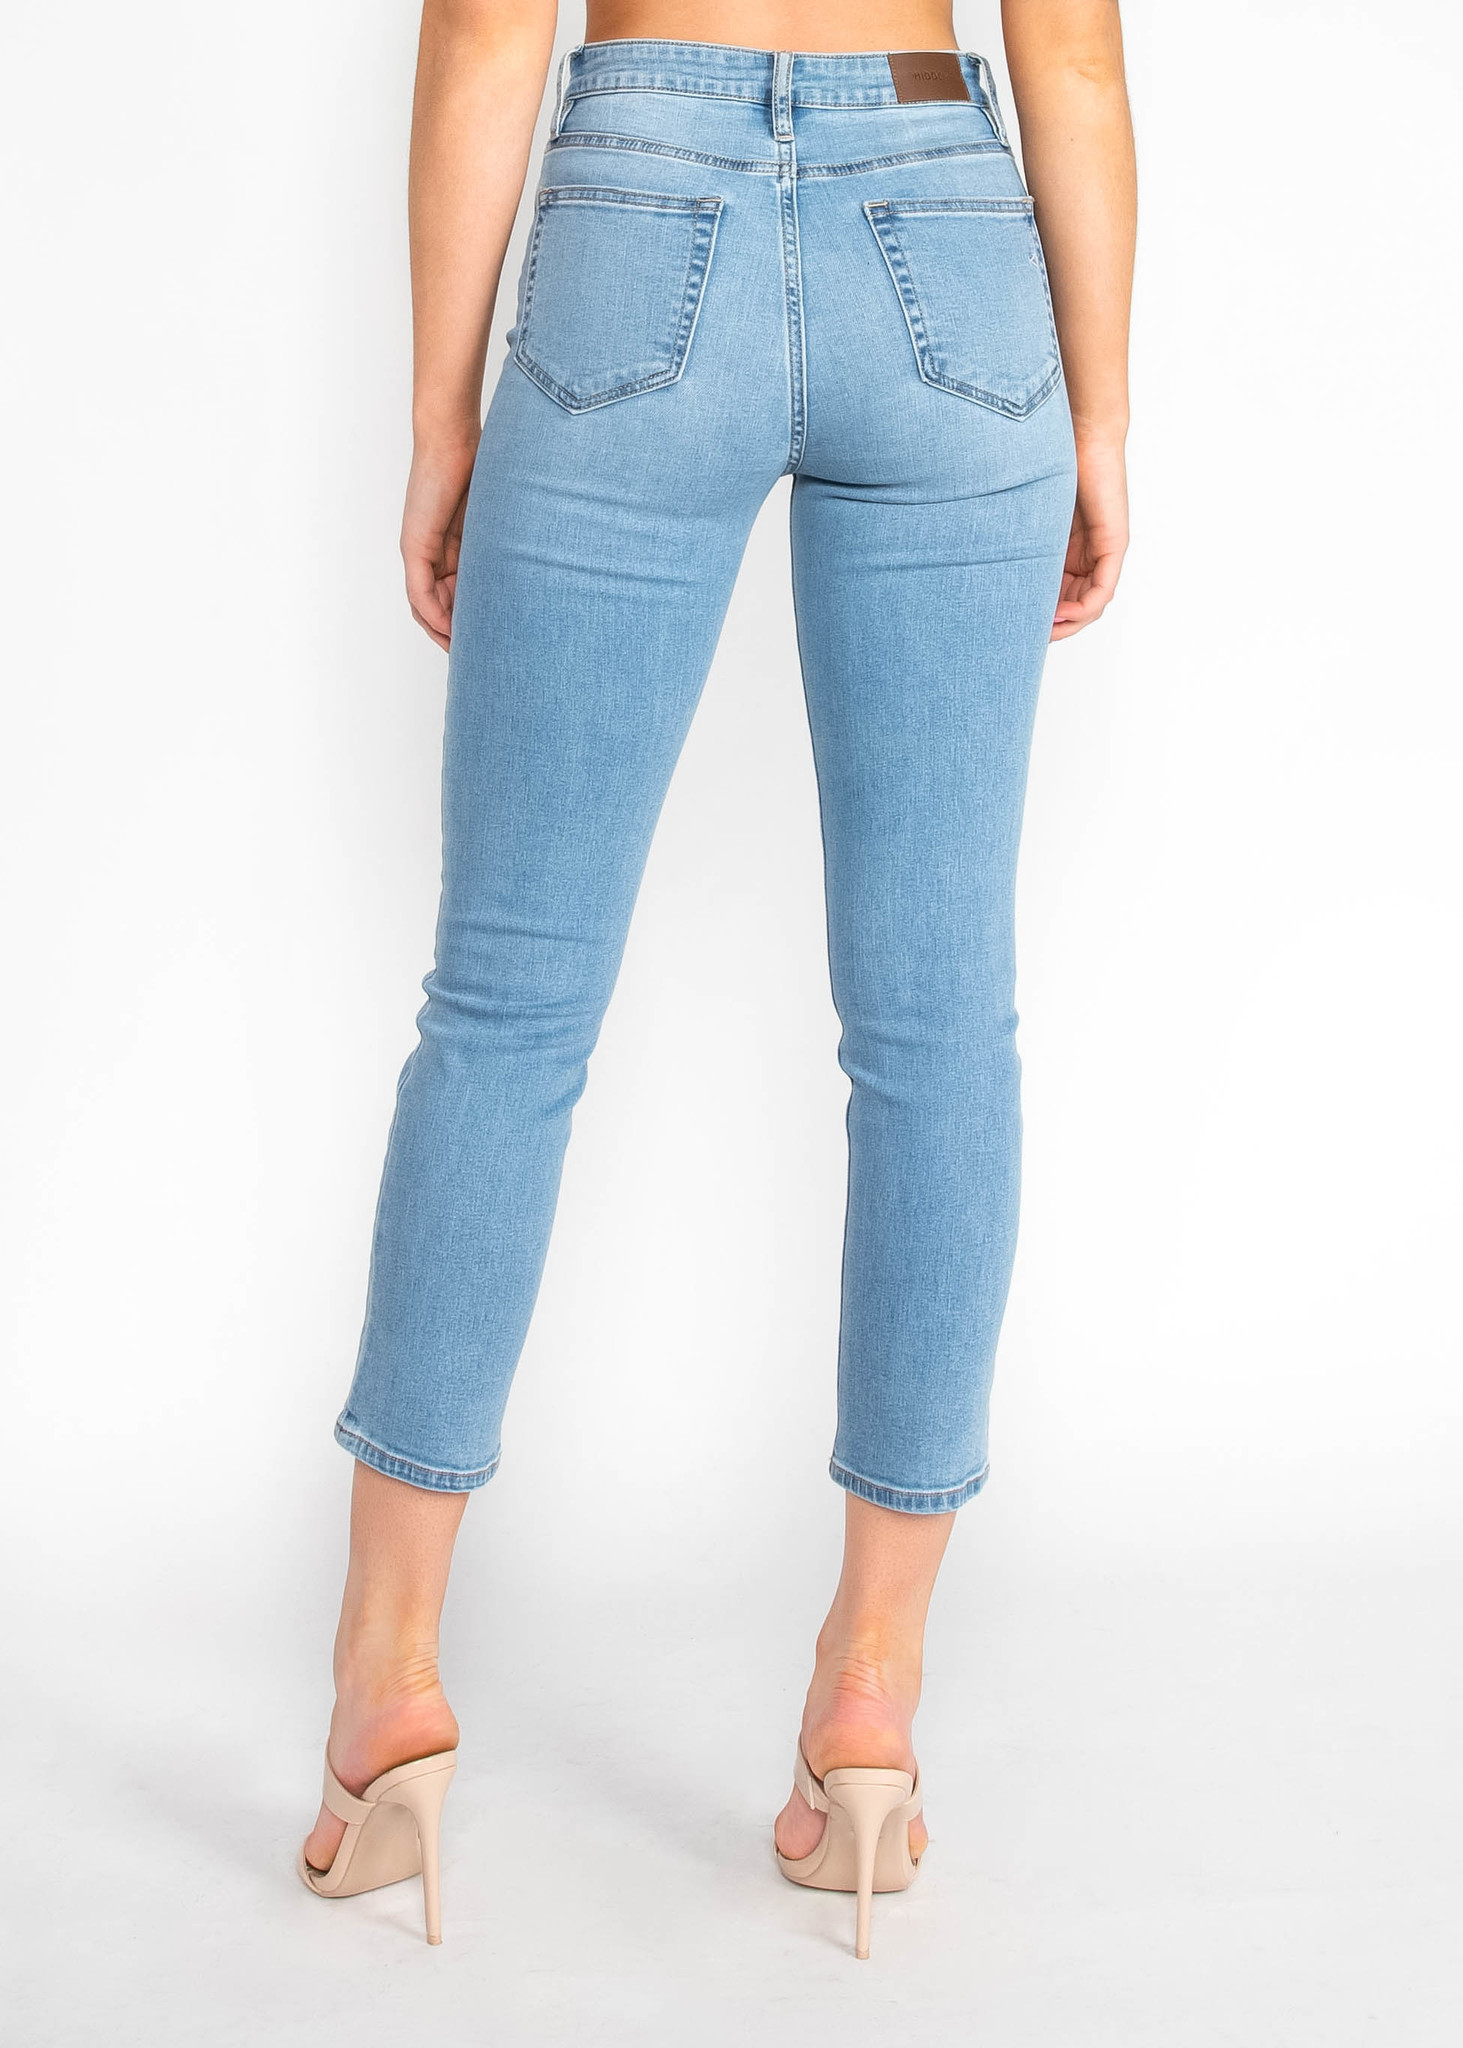 MAKE MEMORIES CROPPED JEANS